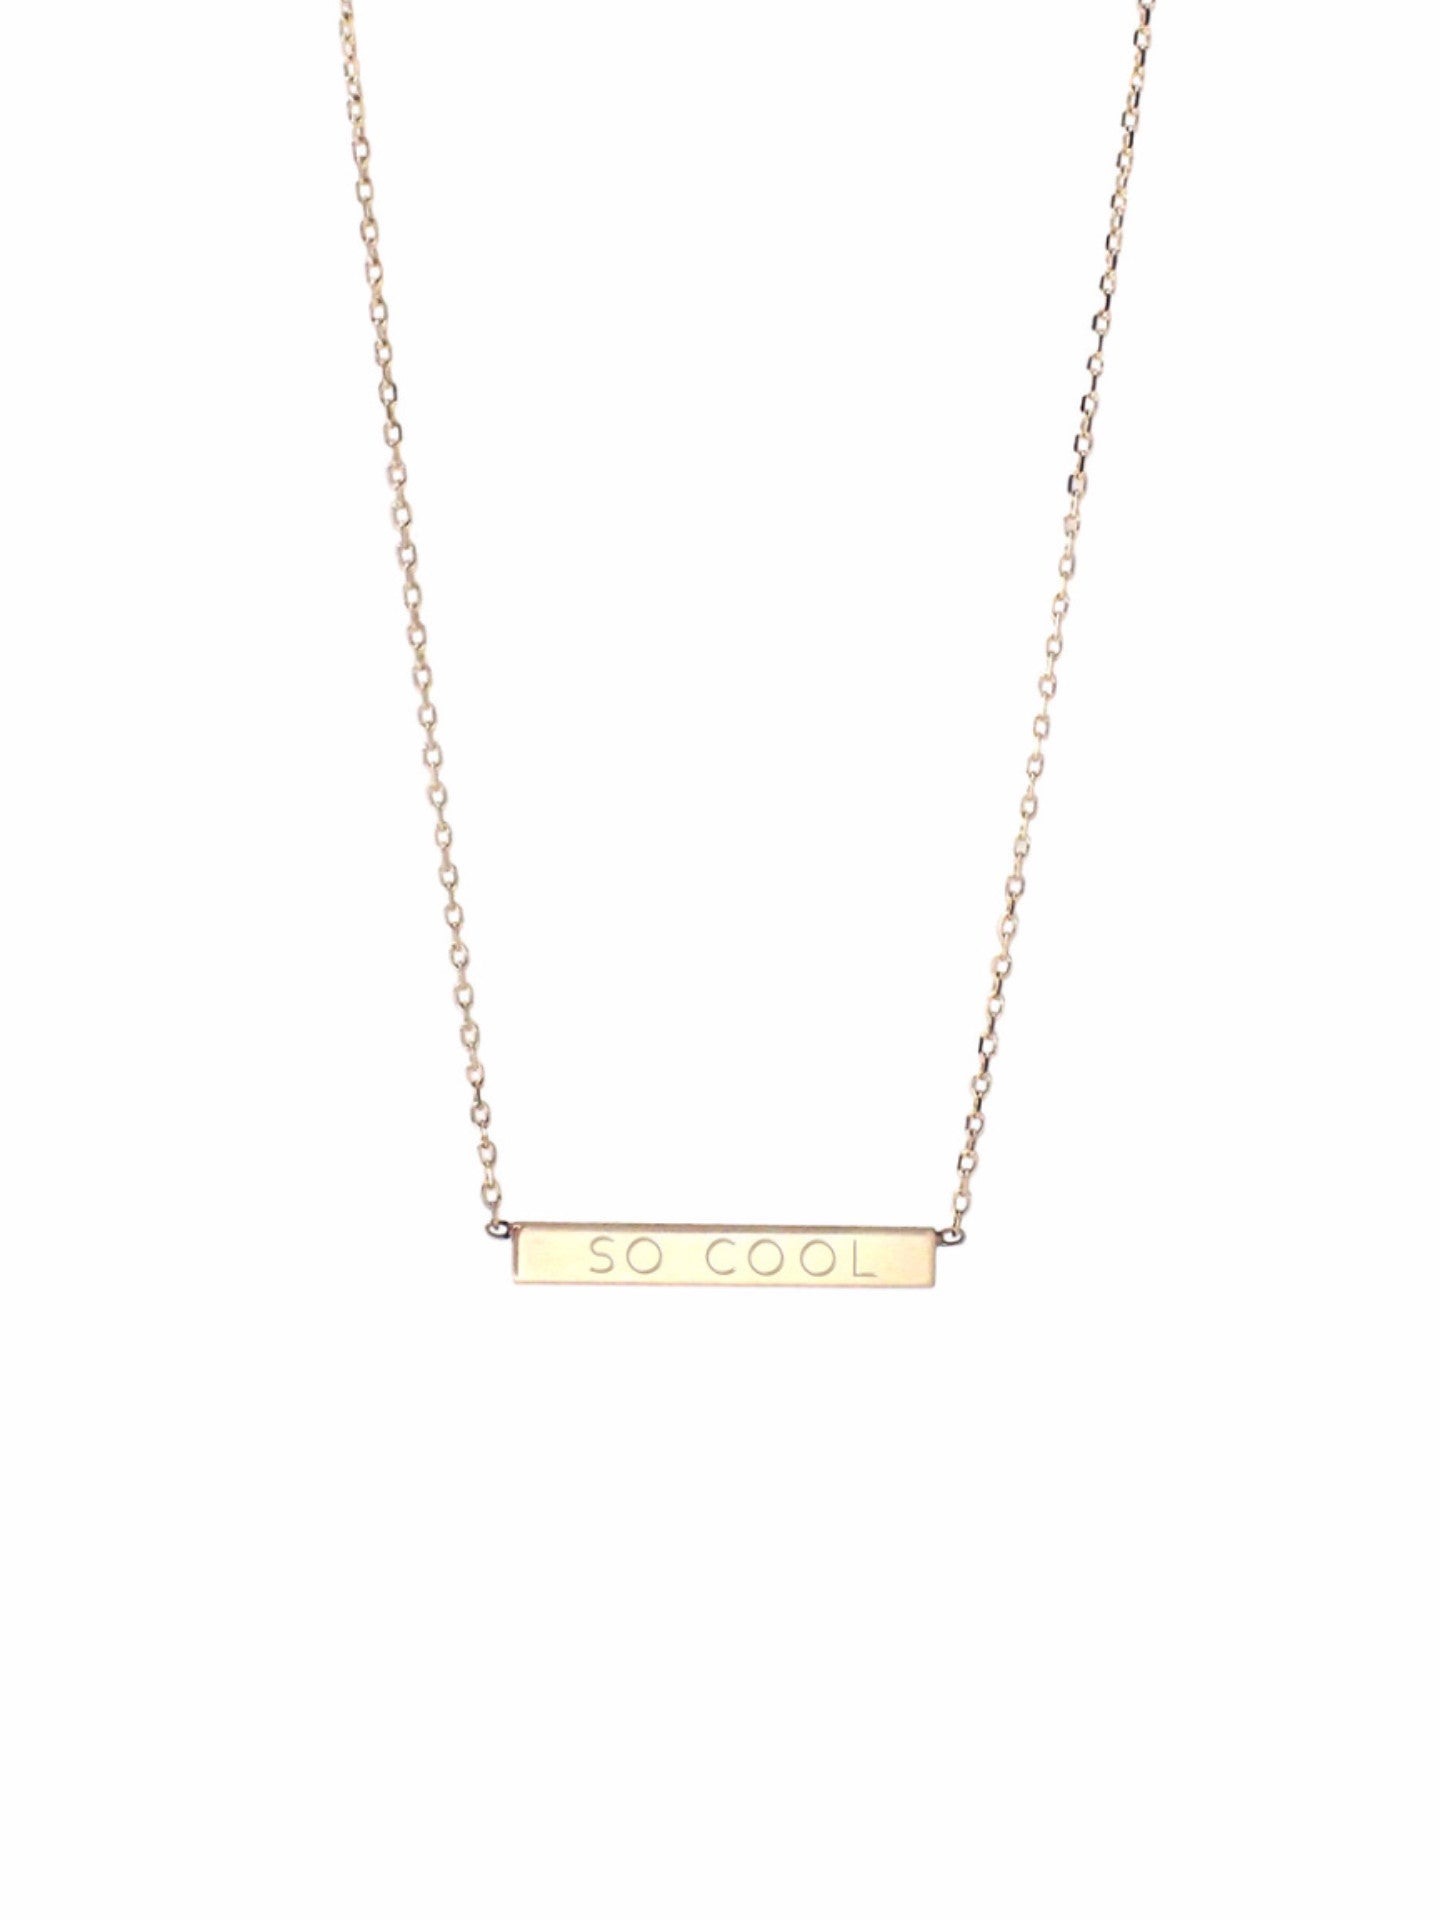 Nomine Necklace / Gold